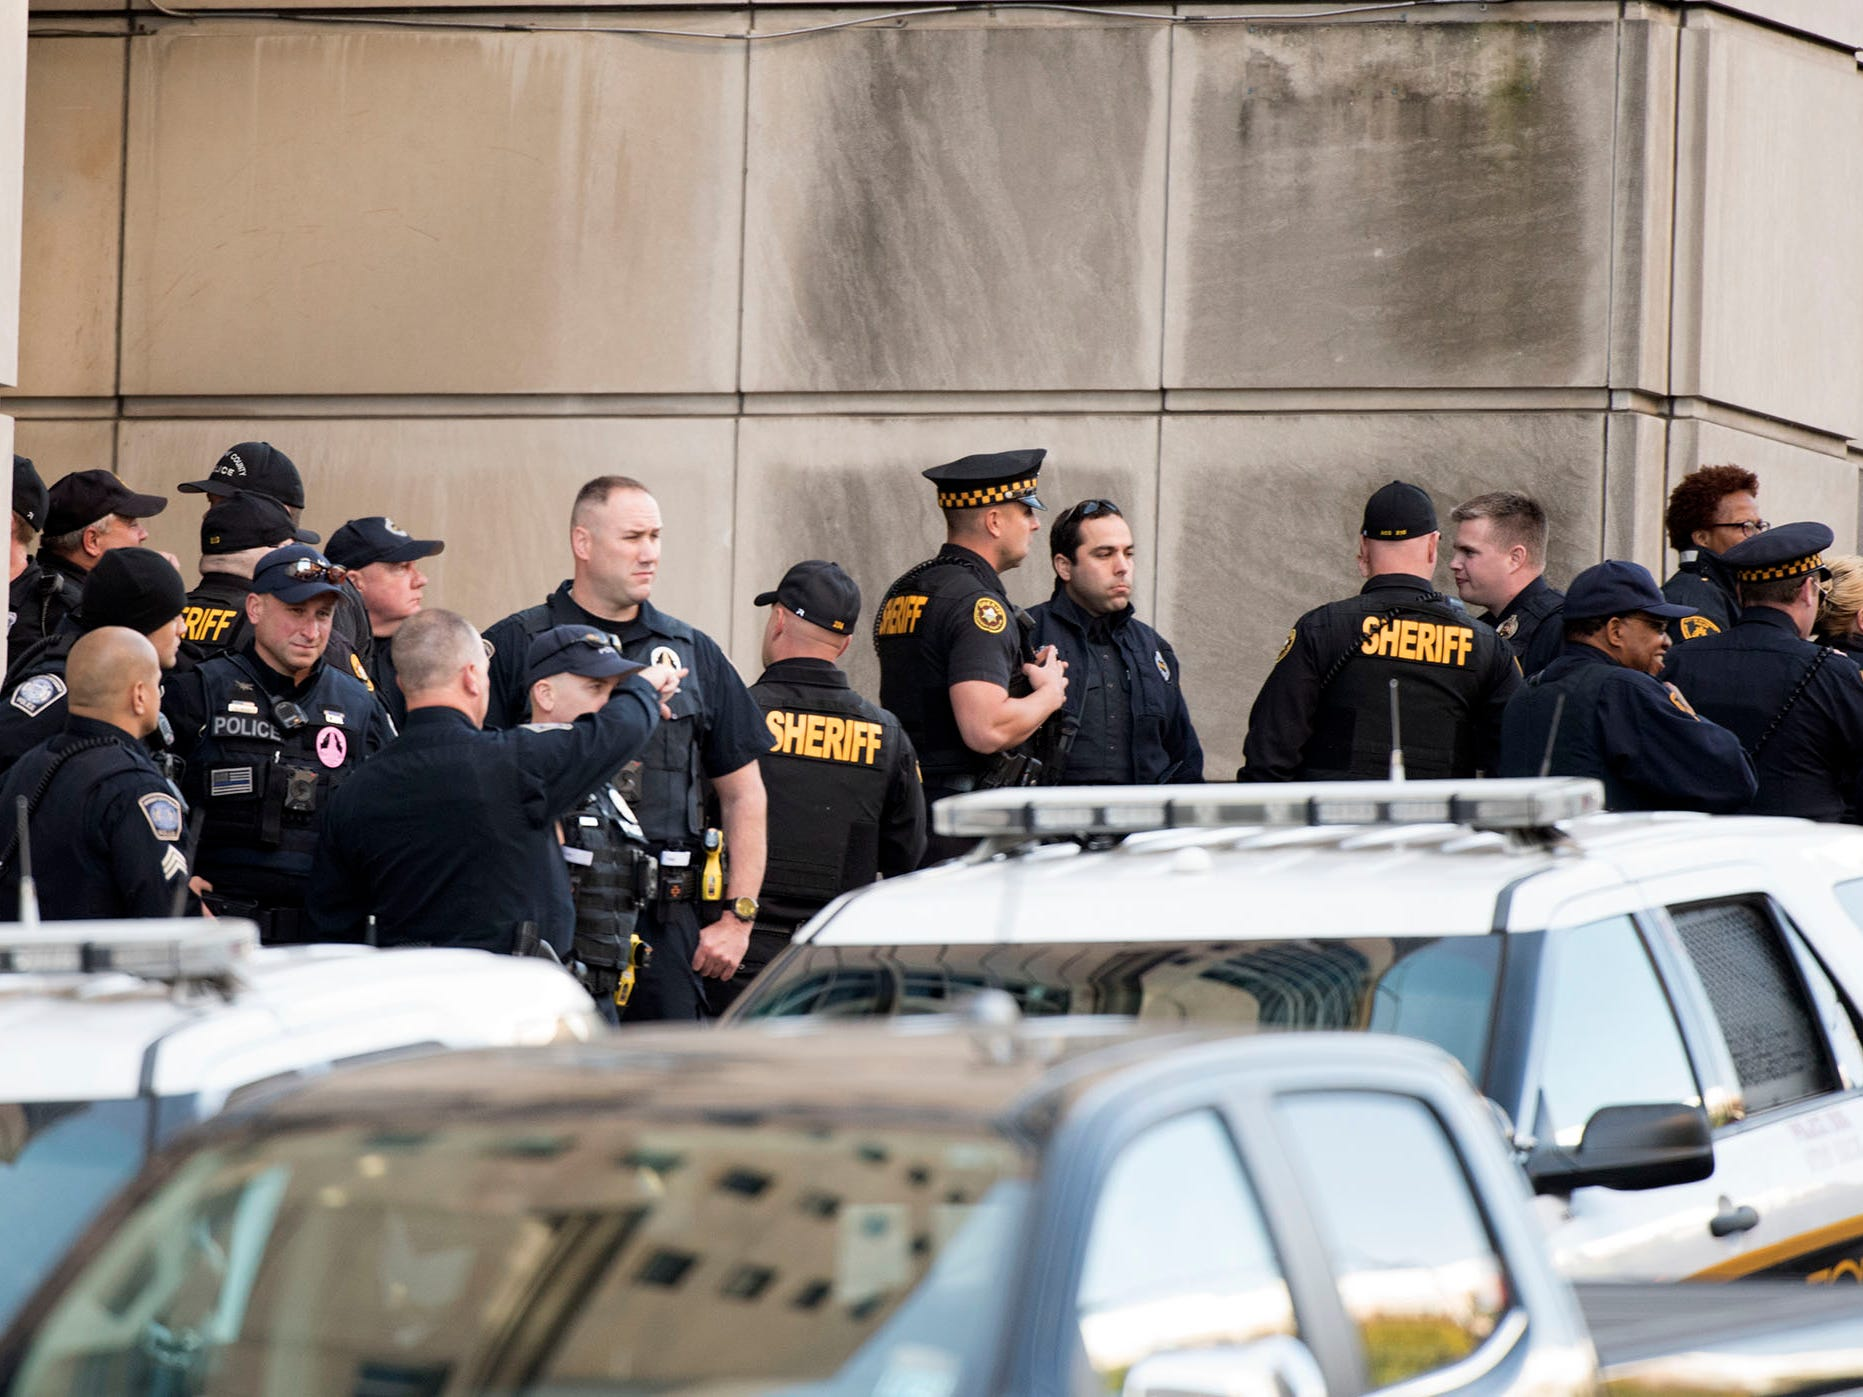 Pittsburgh area police wait at a UPMC entrance before President Trump's visit. A gunman entered the Tree of Life Congregation Synagogue in the Squirrel Hill neighborhood of Pittsburgh and opened fire on the congregants and engaged police, Saturday morning, according to officials. (Markell DeLoatch, Public Opinion/via USA Today Network)